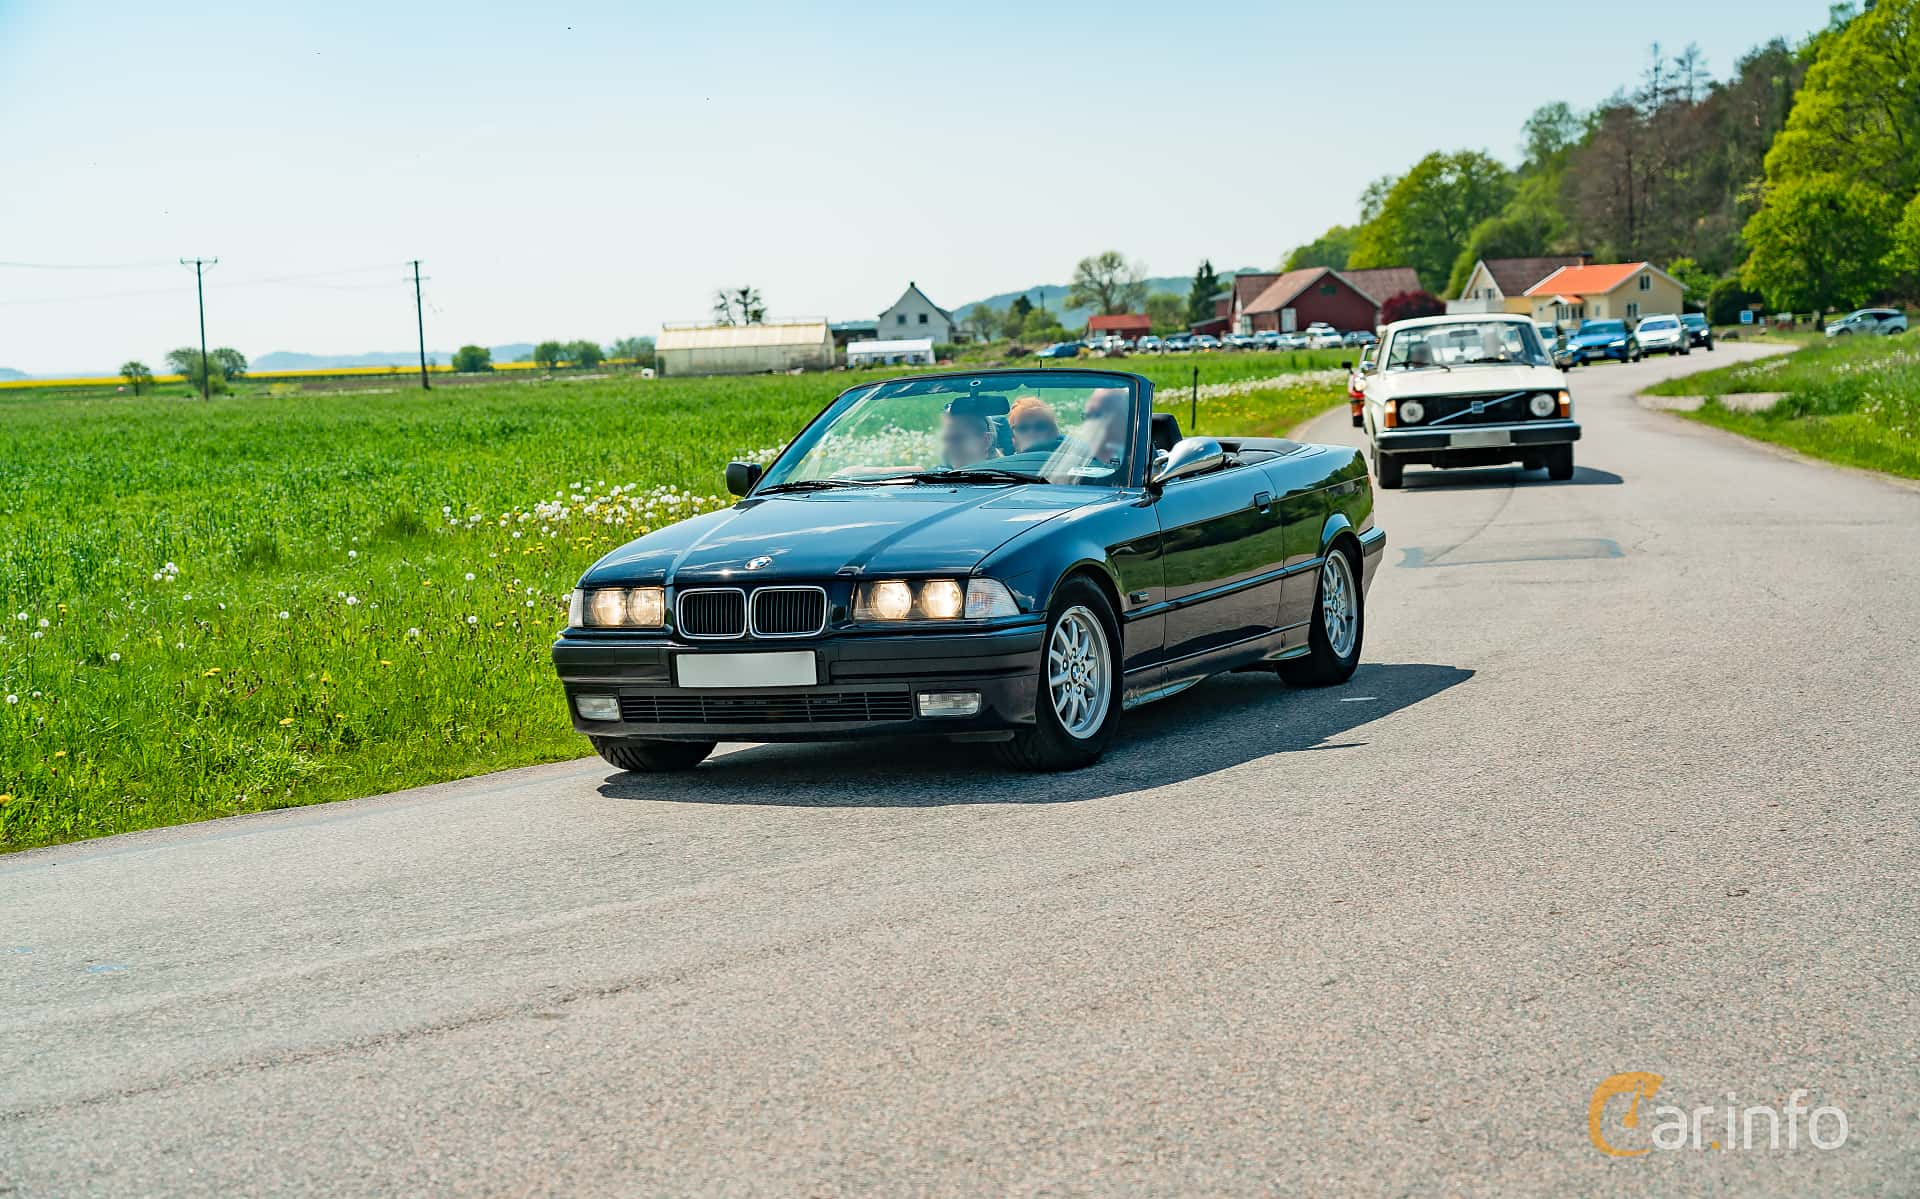 BMW 328I Convertible >> 3 Images Of Bmw 328i Convertible Automatic 193hp 1995 By